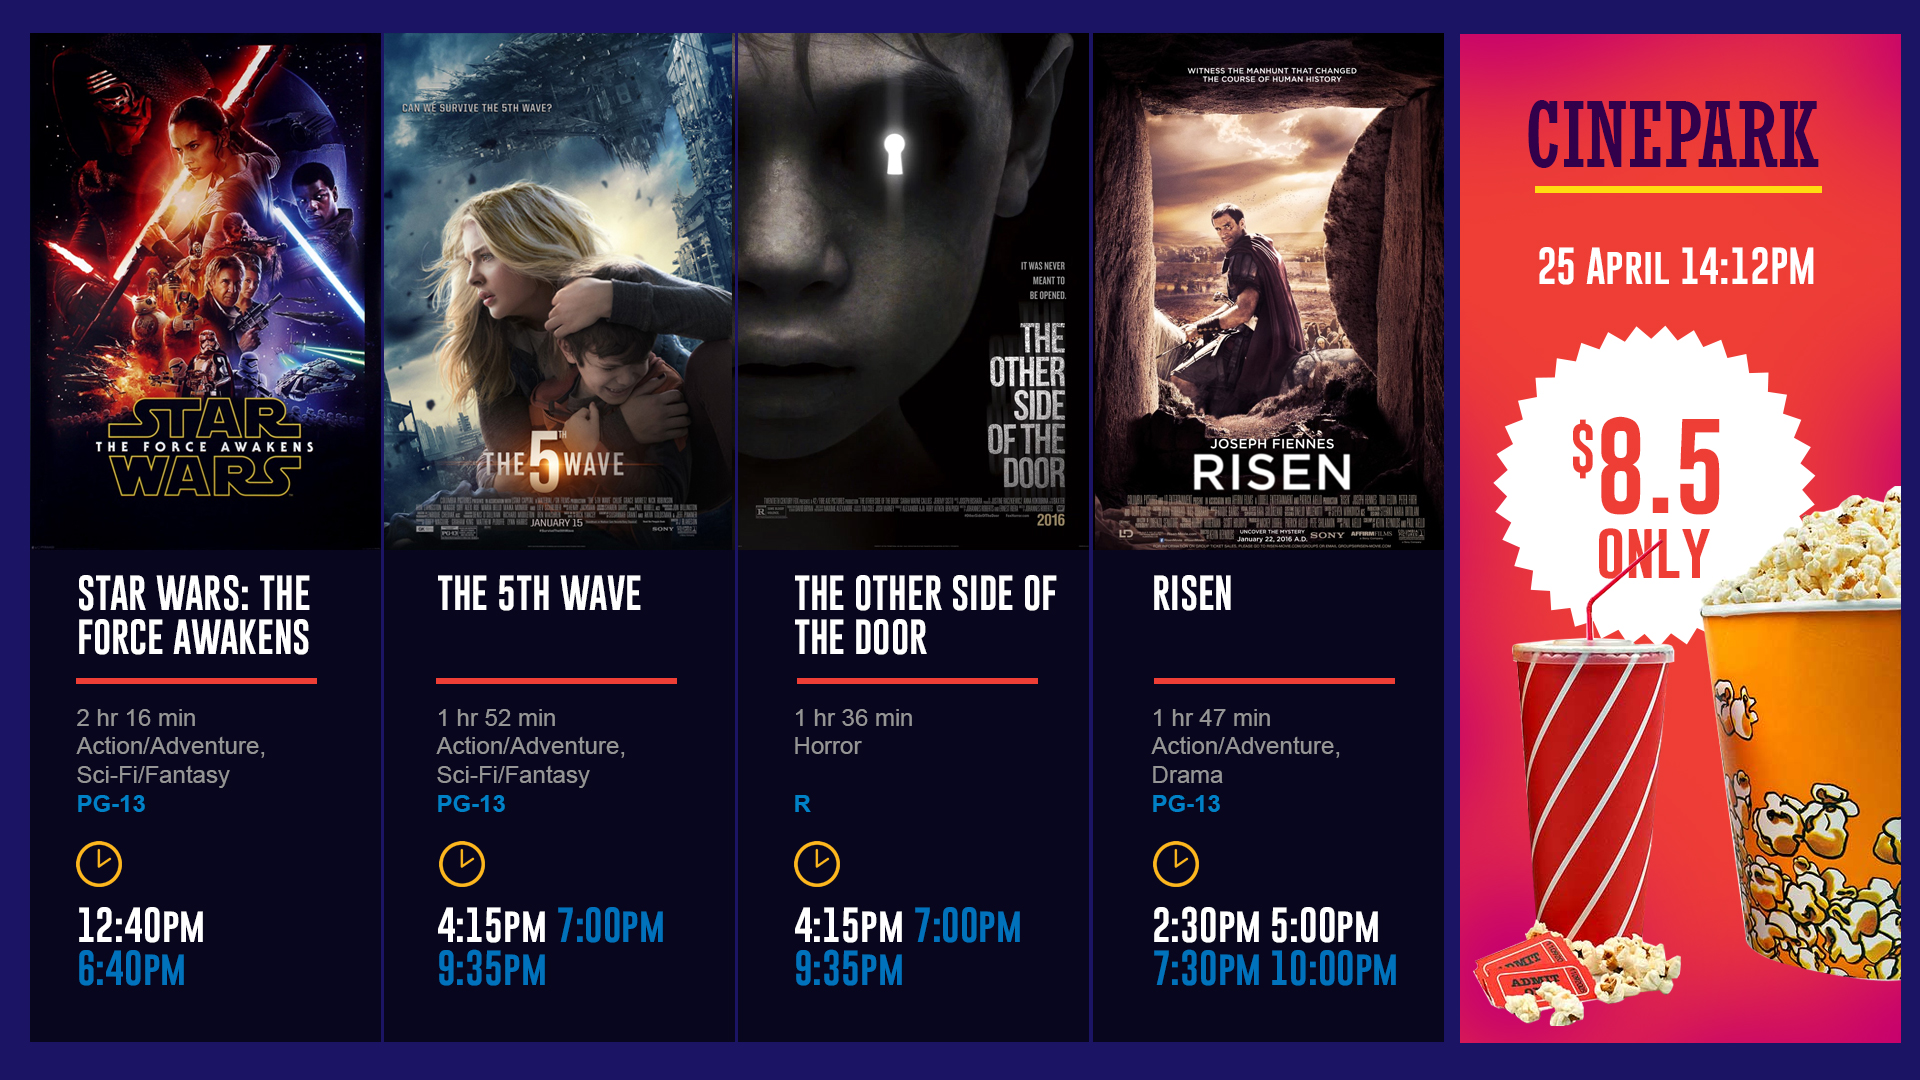 Fantasy theater movie times